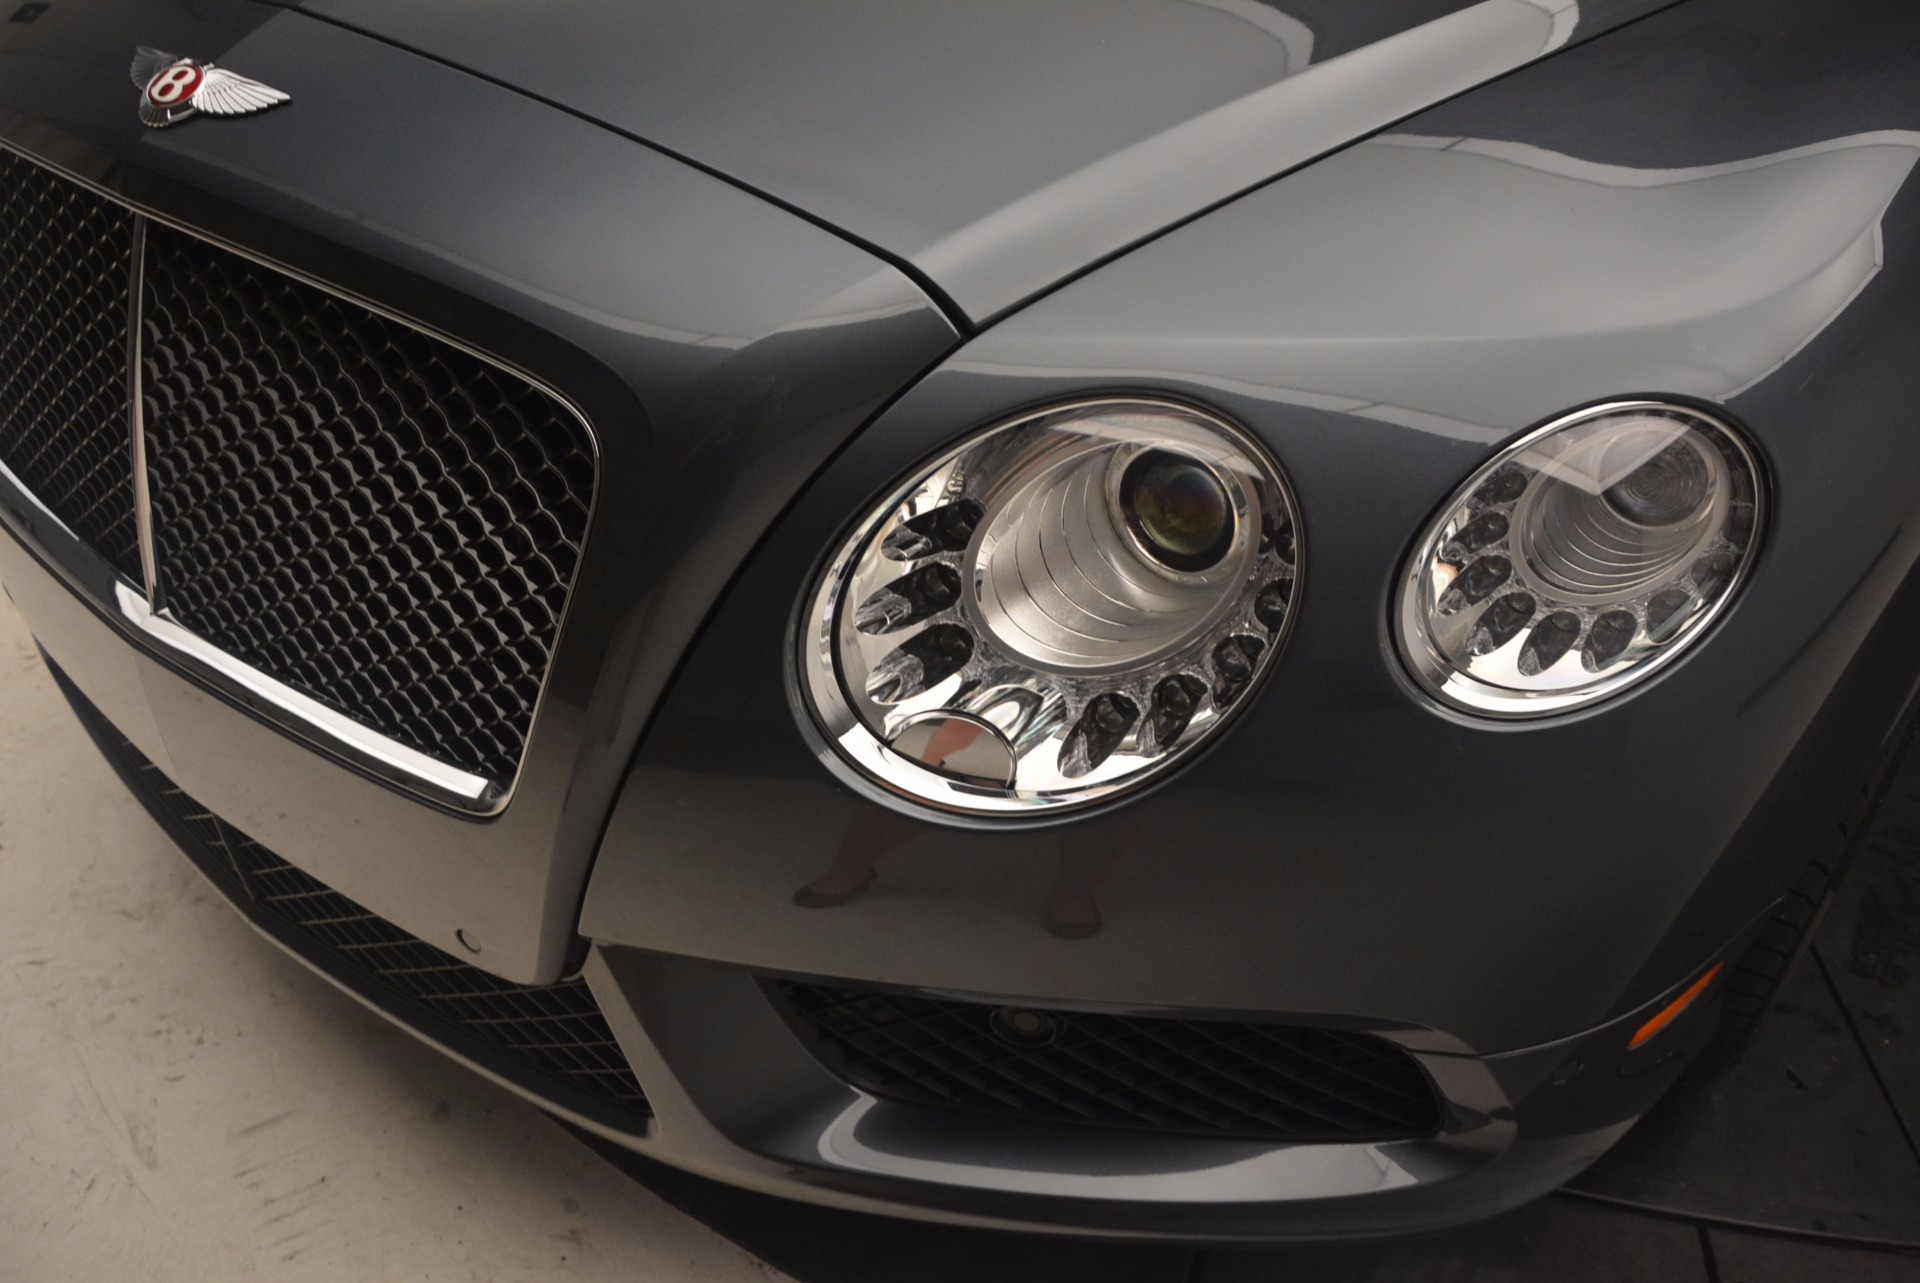 Used 2013 Bentley Continental GT V8 Le Mans Edition, 1 of 48 For Sale In Greenwich, CT 1288_p27